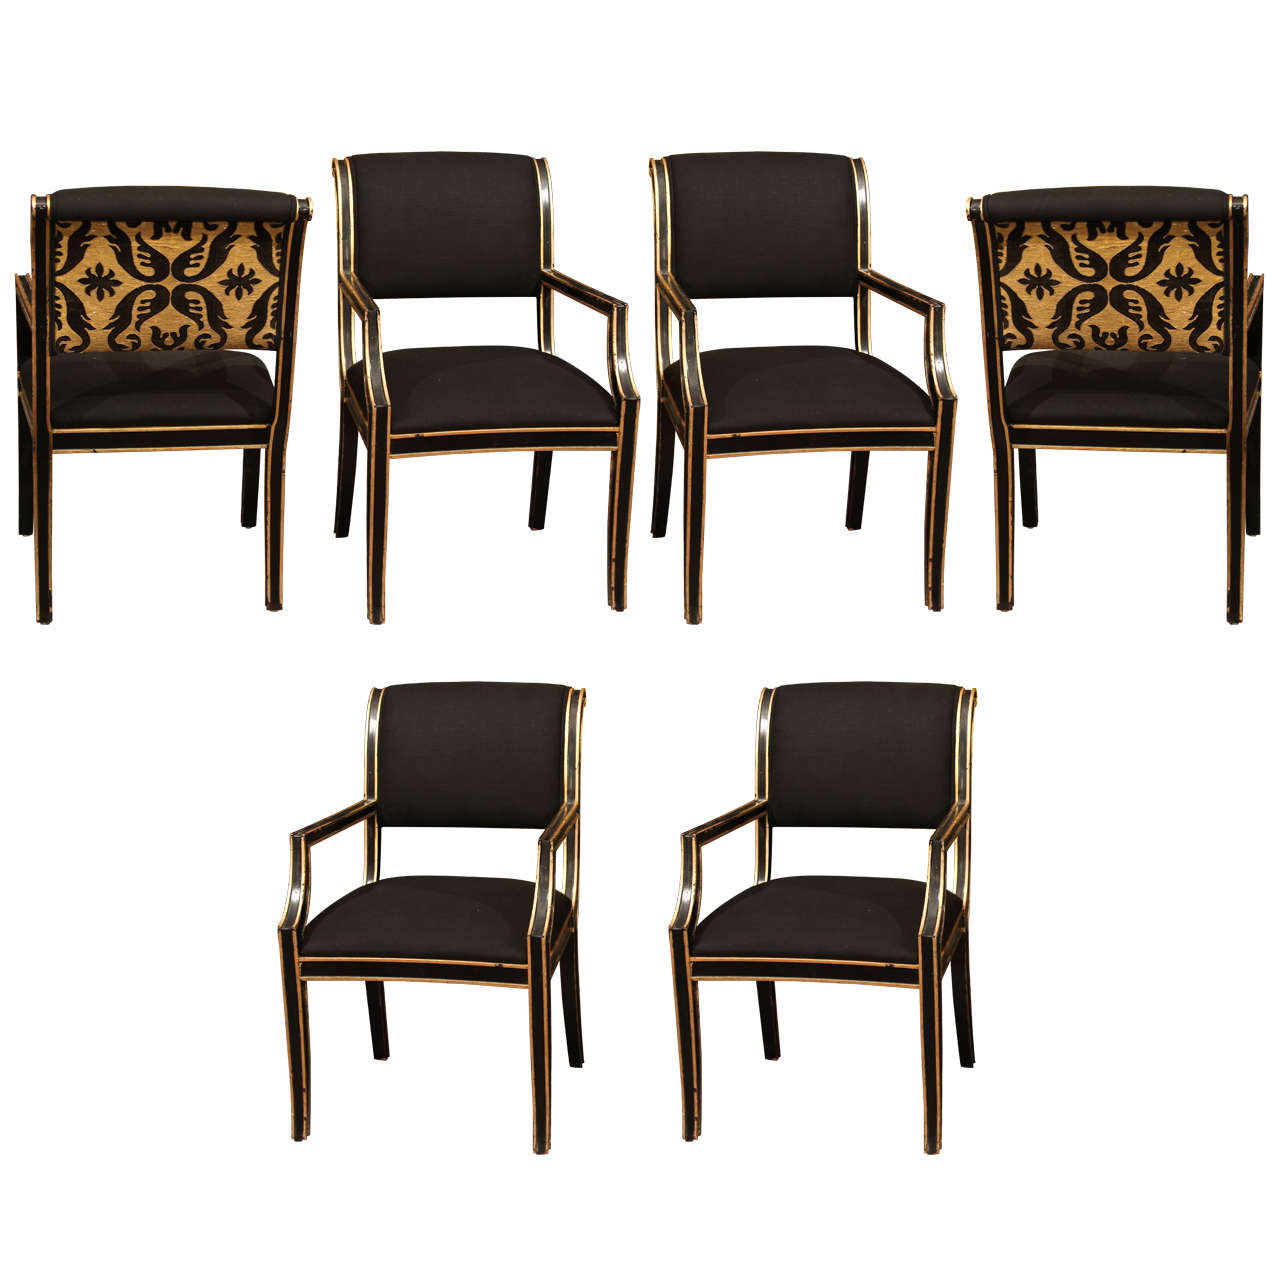 modern art chair covers and linens best ergonomic 6 handsome chairs in black linen for sale at 1stdibs